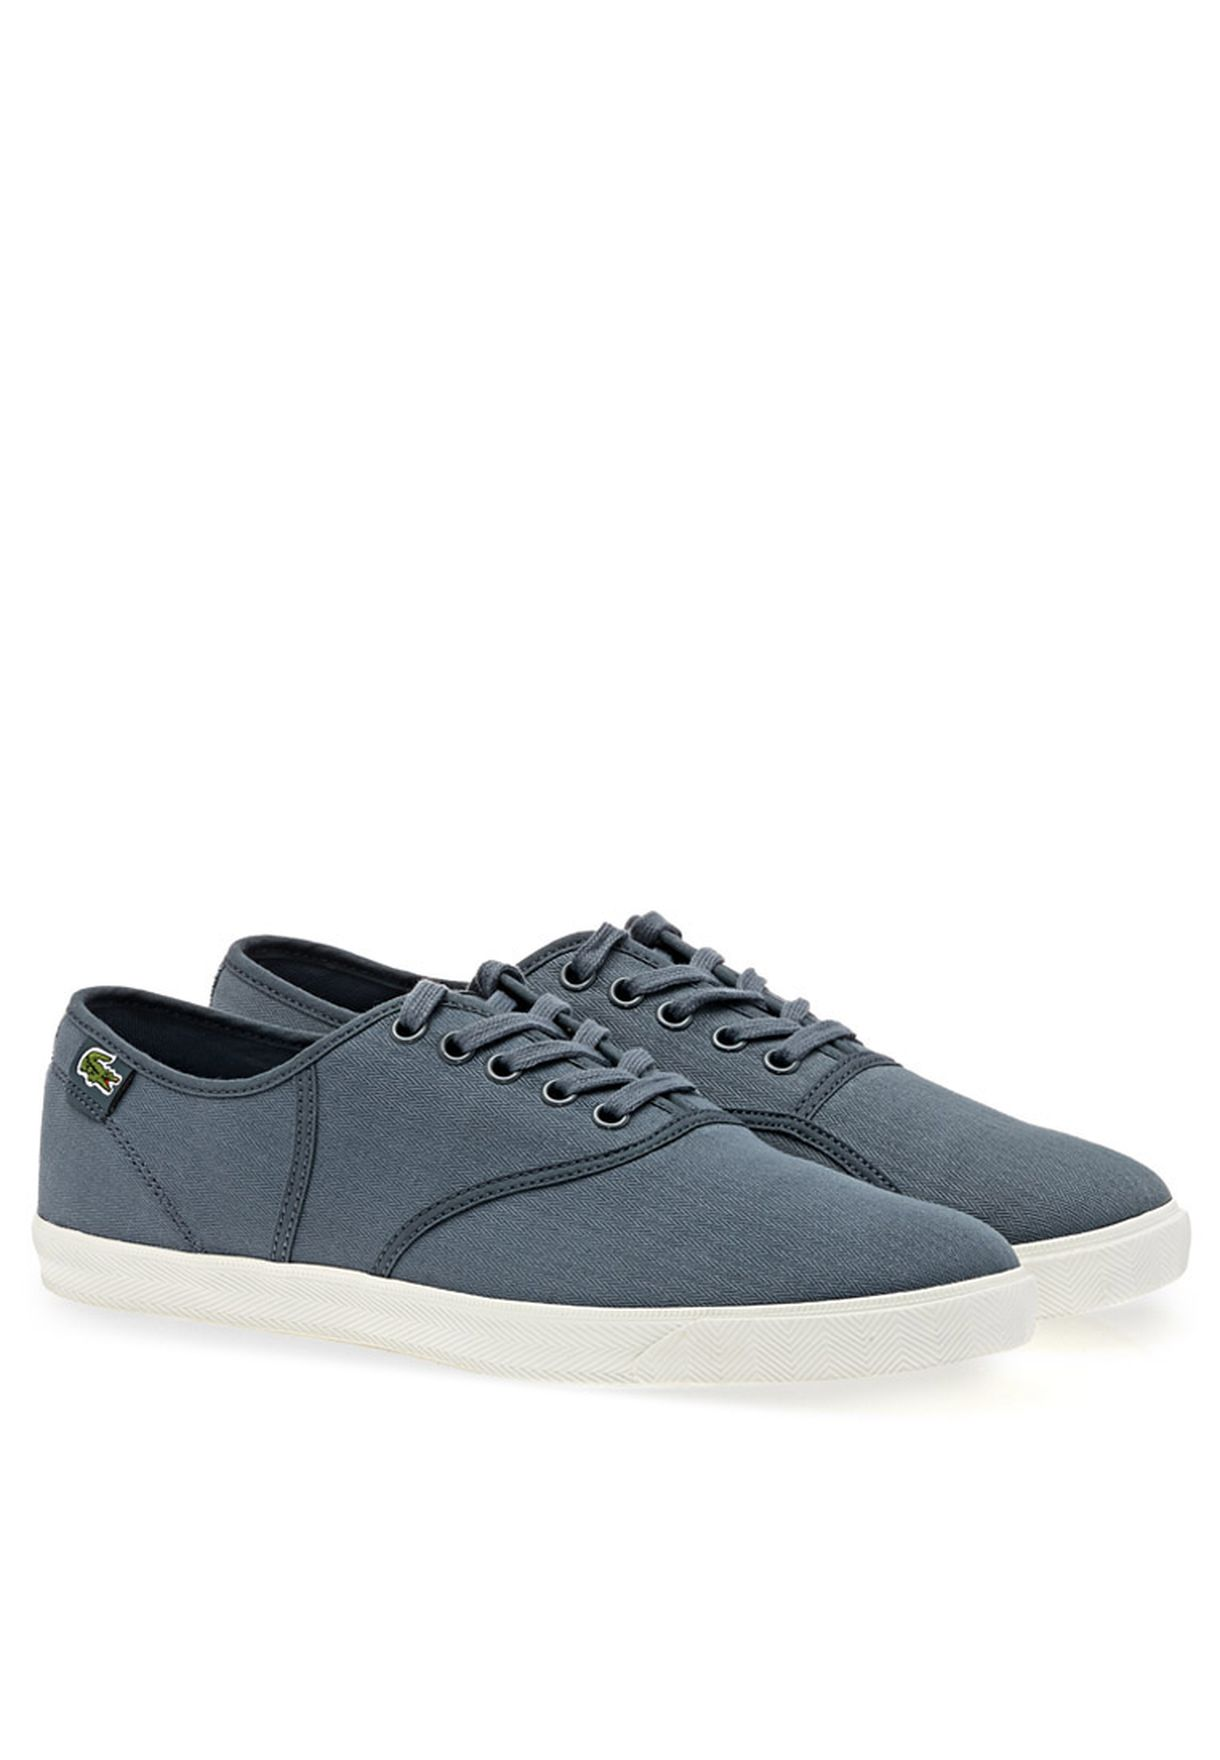 845883965c4398 Shop Lacoste grey RENE Low-top Sneakers RENE JULES for Men in Oman -  LA014SH30DXP